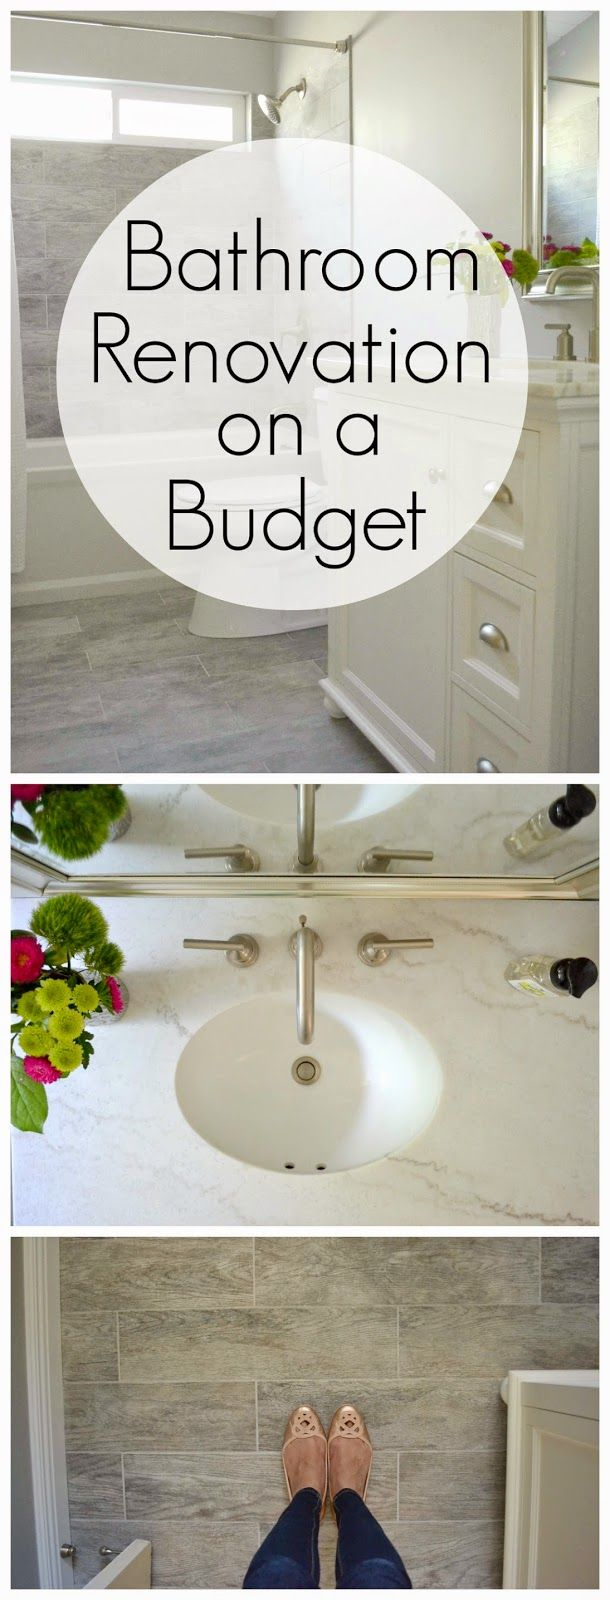 A total transformation on a budget!  This bathroom renovation went from 80's drab to fab.